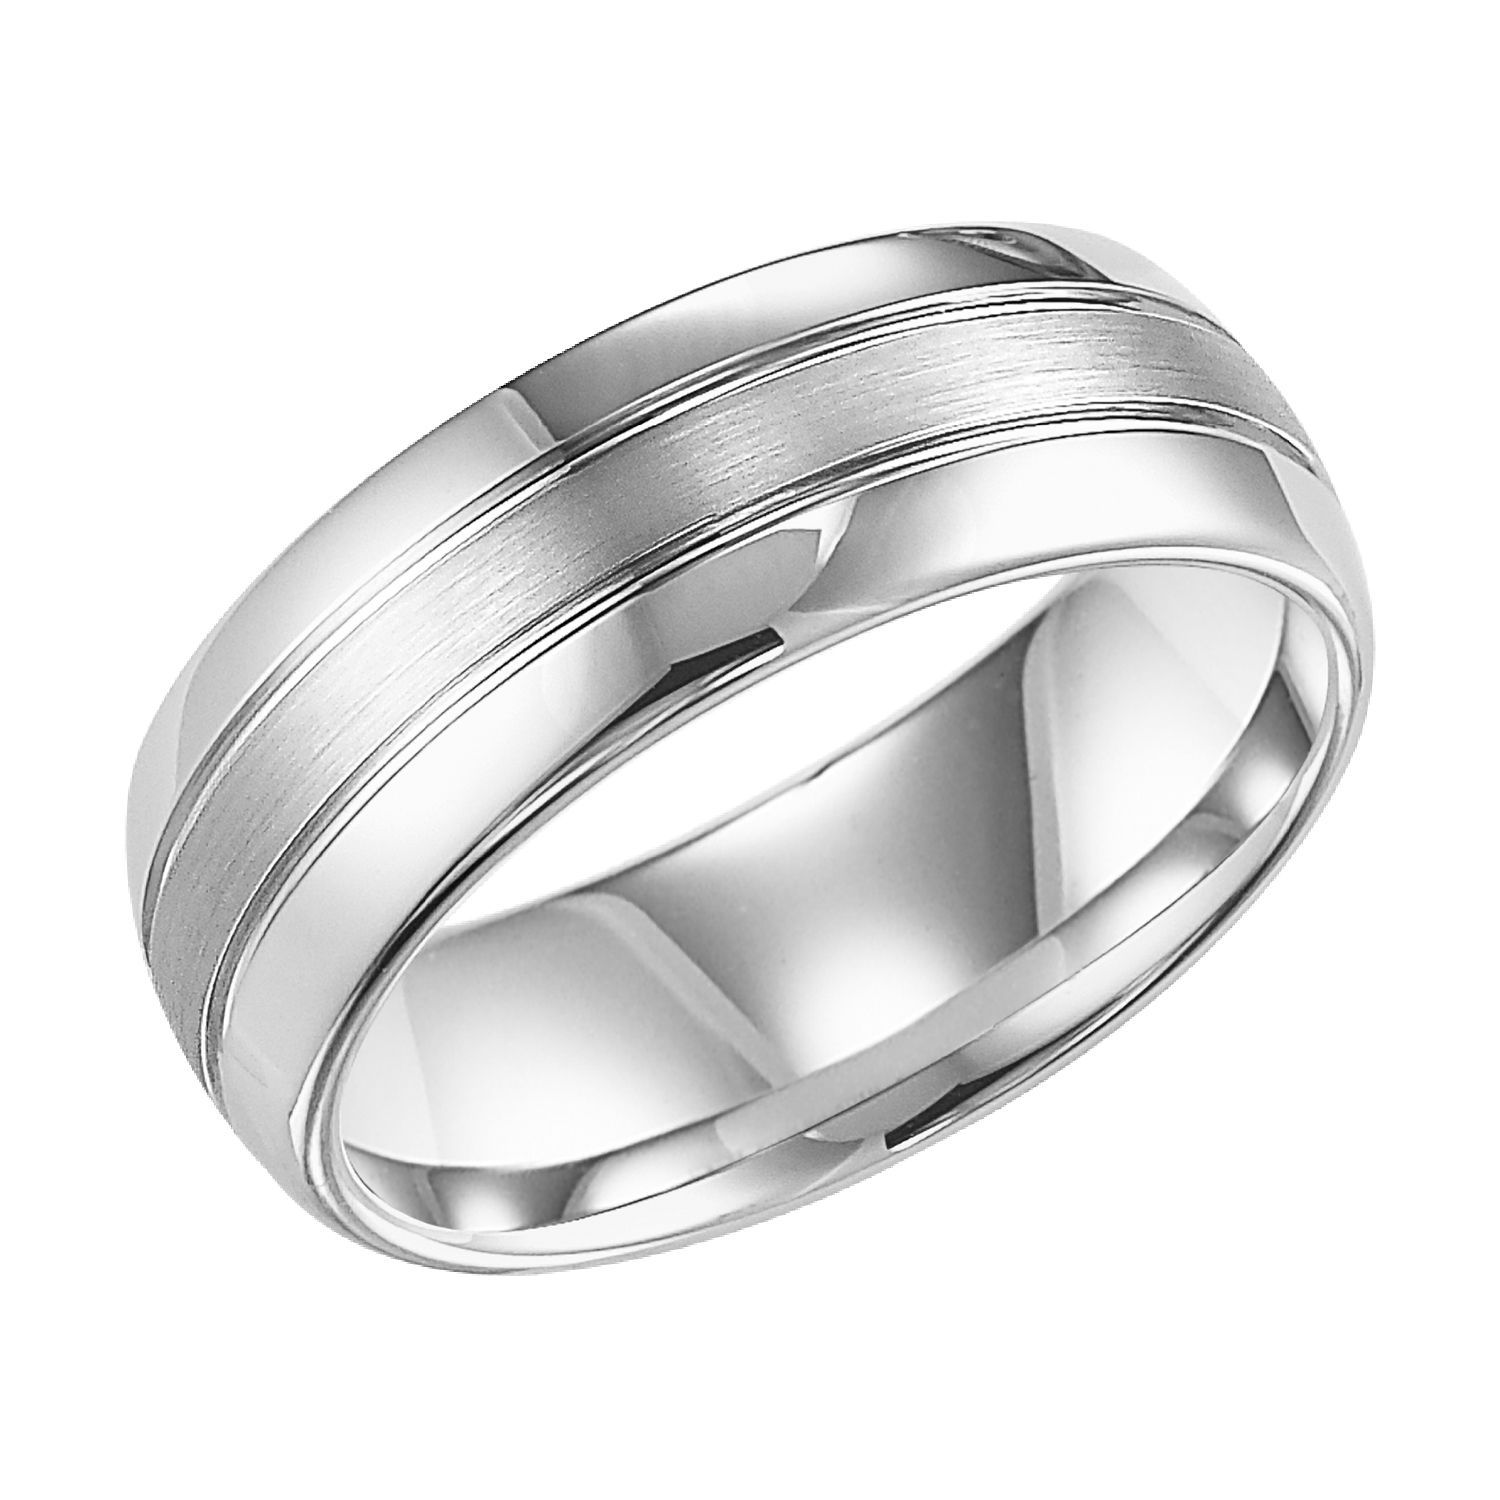 Tungsten Carbide 8mm Comfort Fit Band With Images Comfort Fit